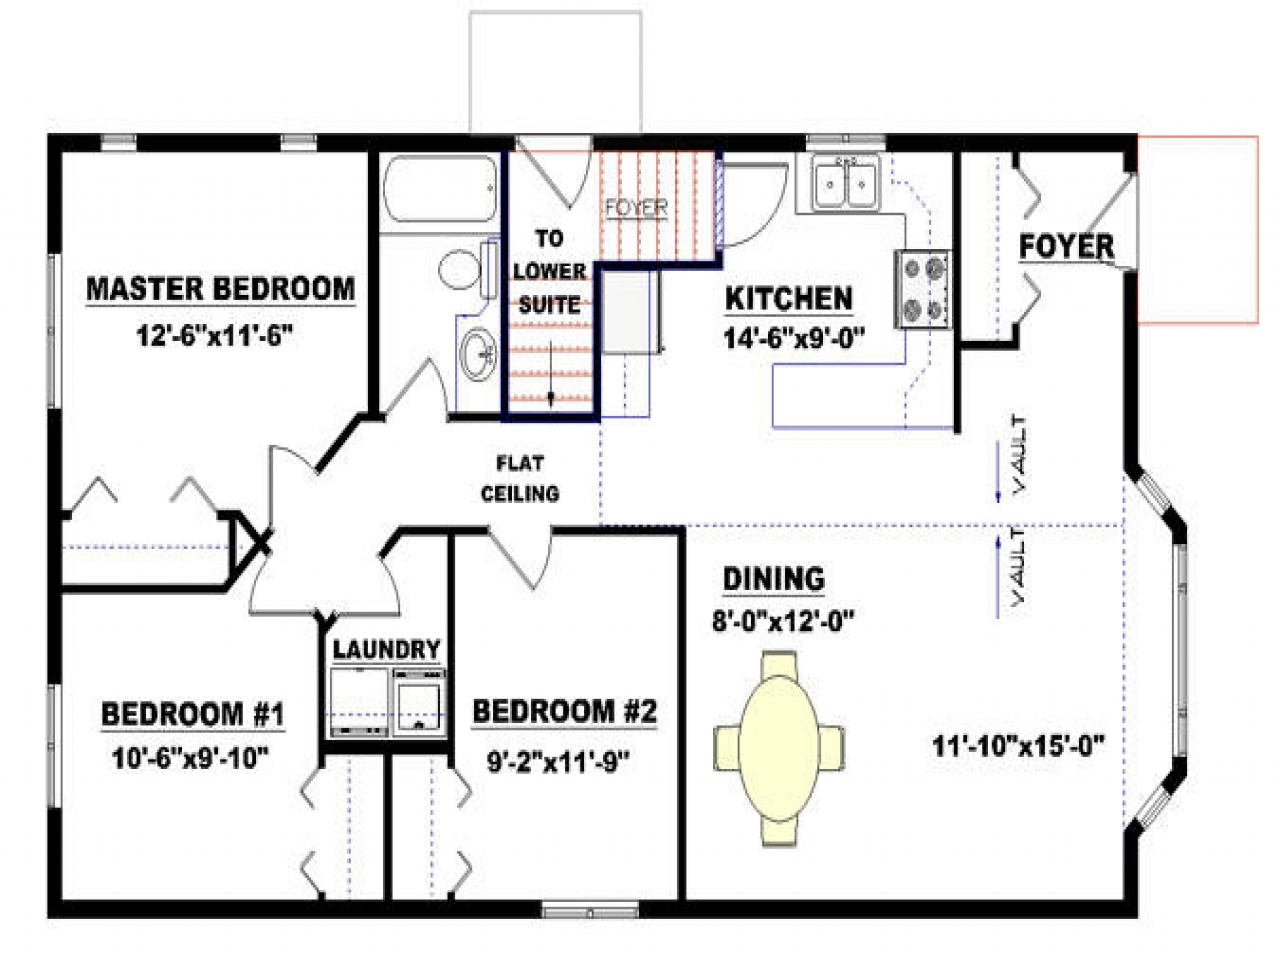 free floor plans house plans free downloads free house plans and designs house blueprints download treesranch com 4382